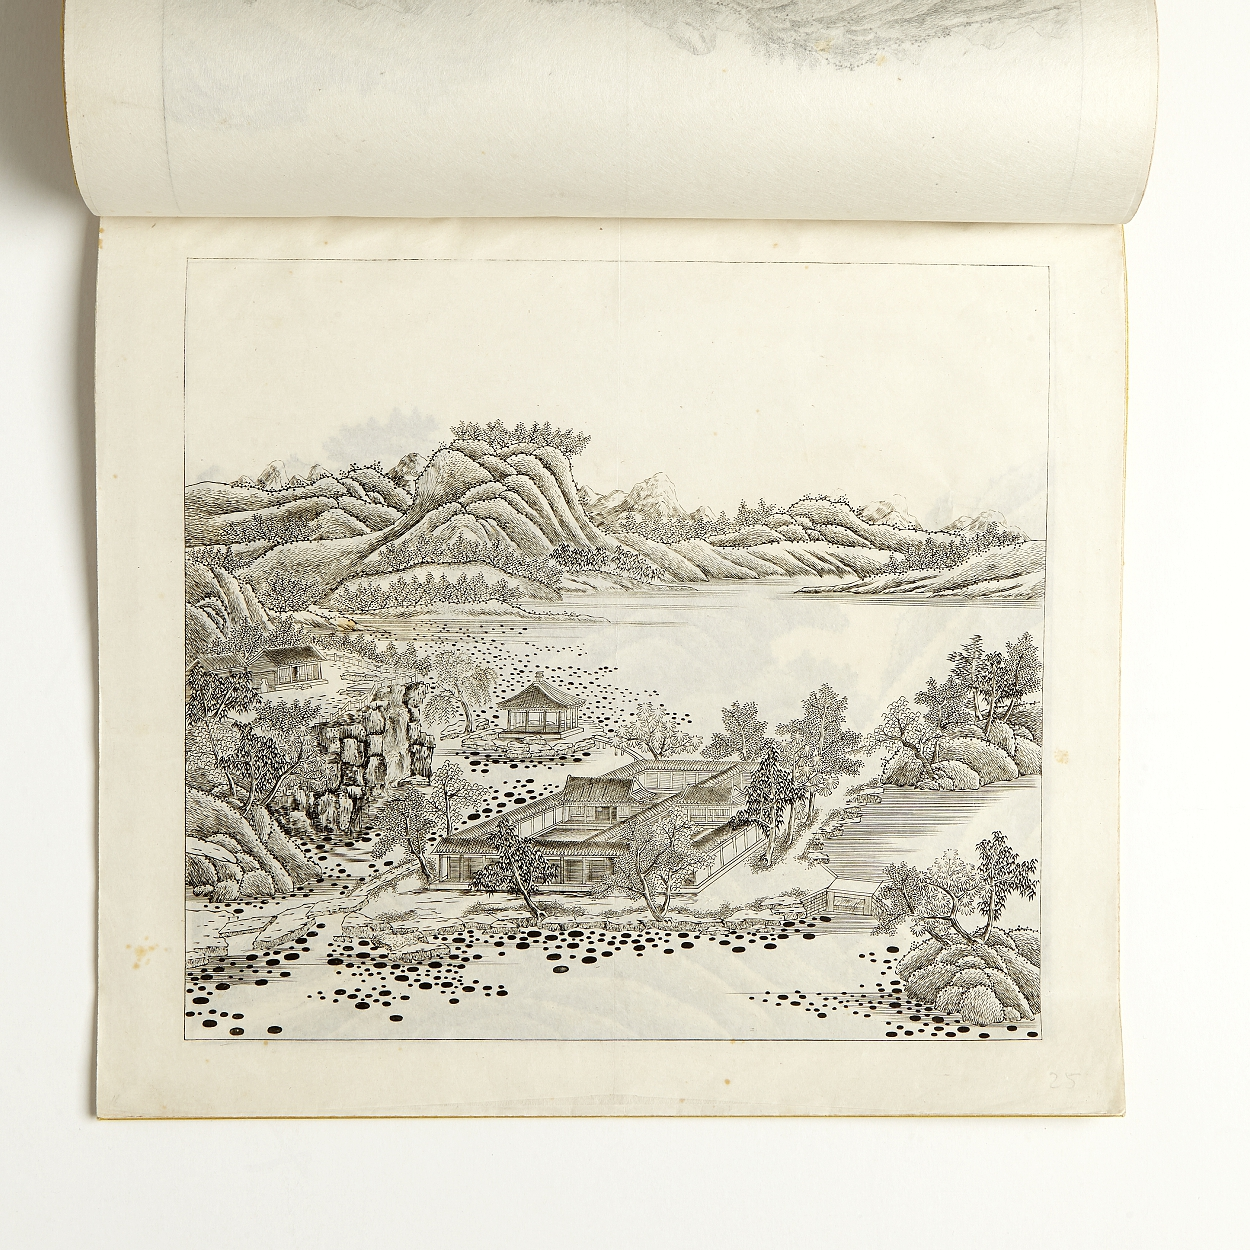 Engravings from the Emperor's garden at Rehe